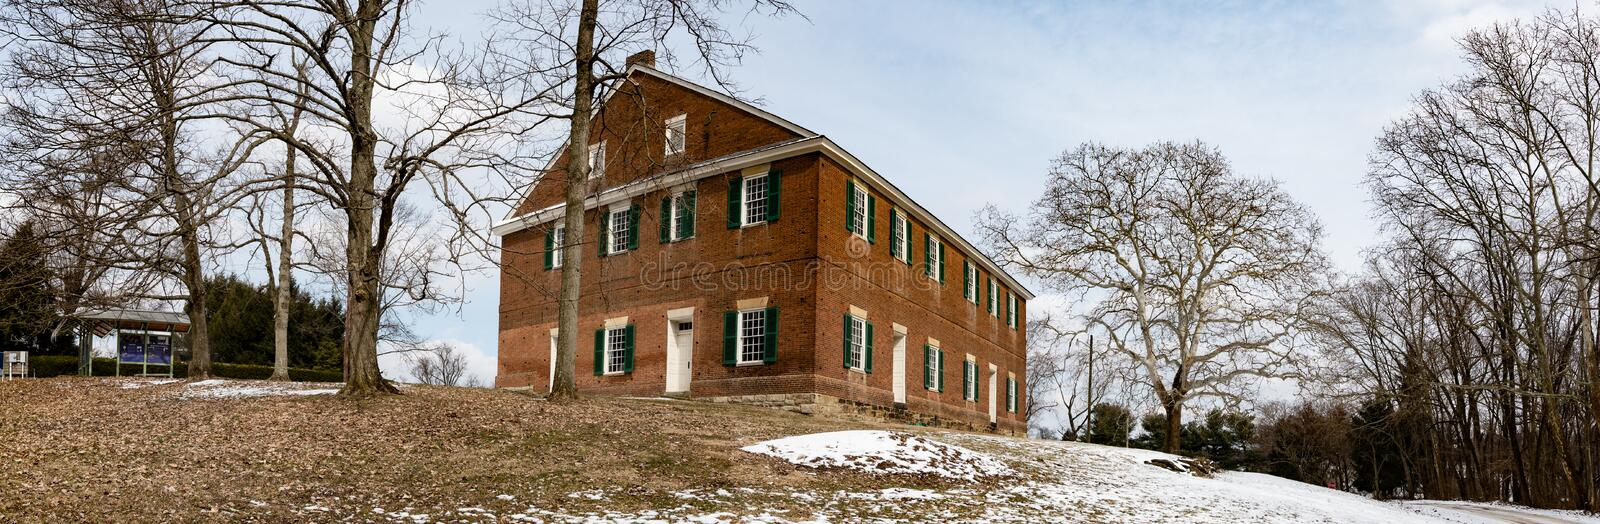 Web banner of Quaker Meeting House in Mt. Pleasant. Mt. Pleasant, Ohio/USA-March 7, 2019: Web banner of the historic Quaker Meeting House on the hill. Mount stock images